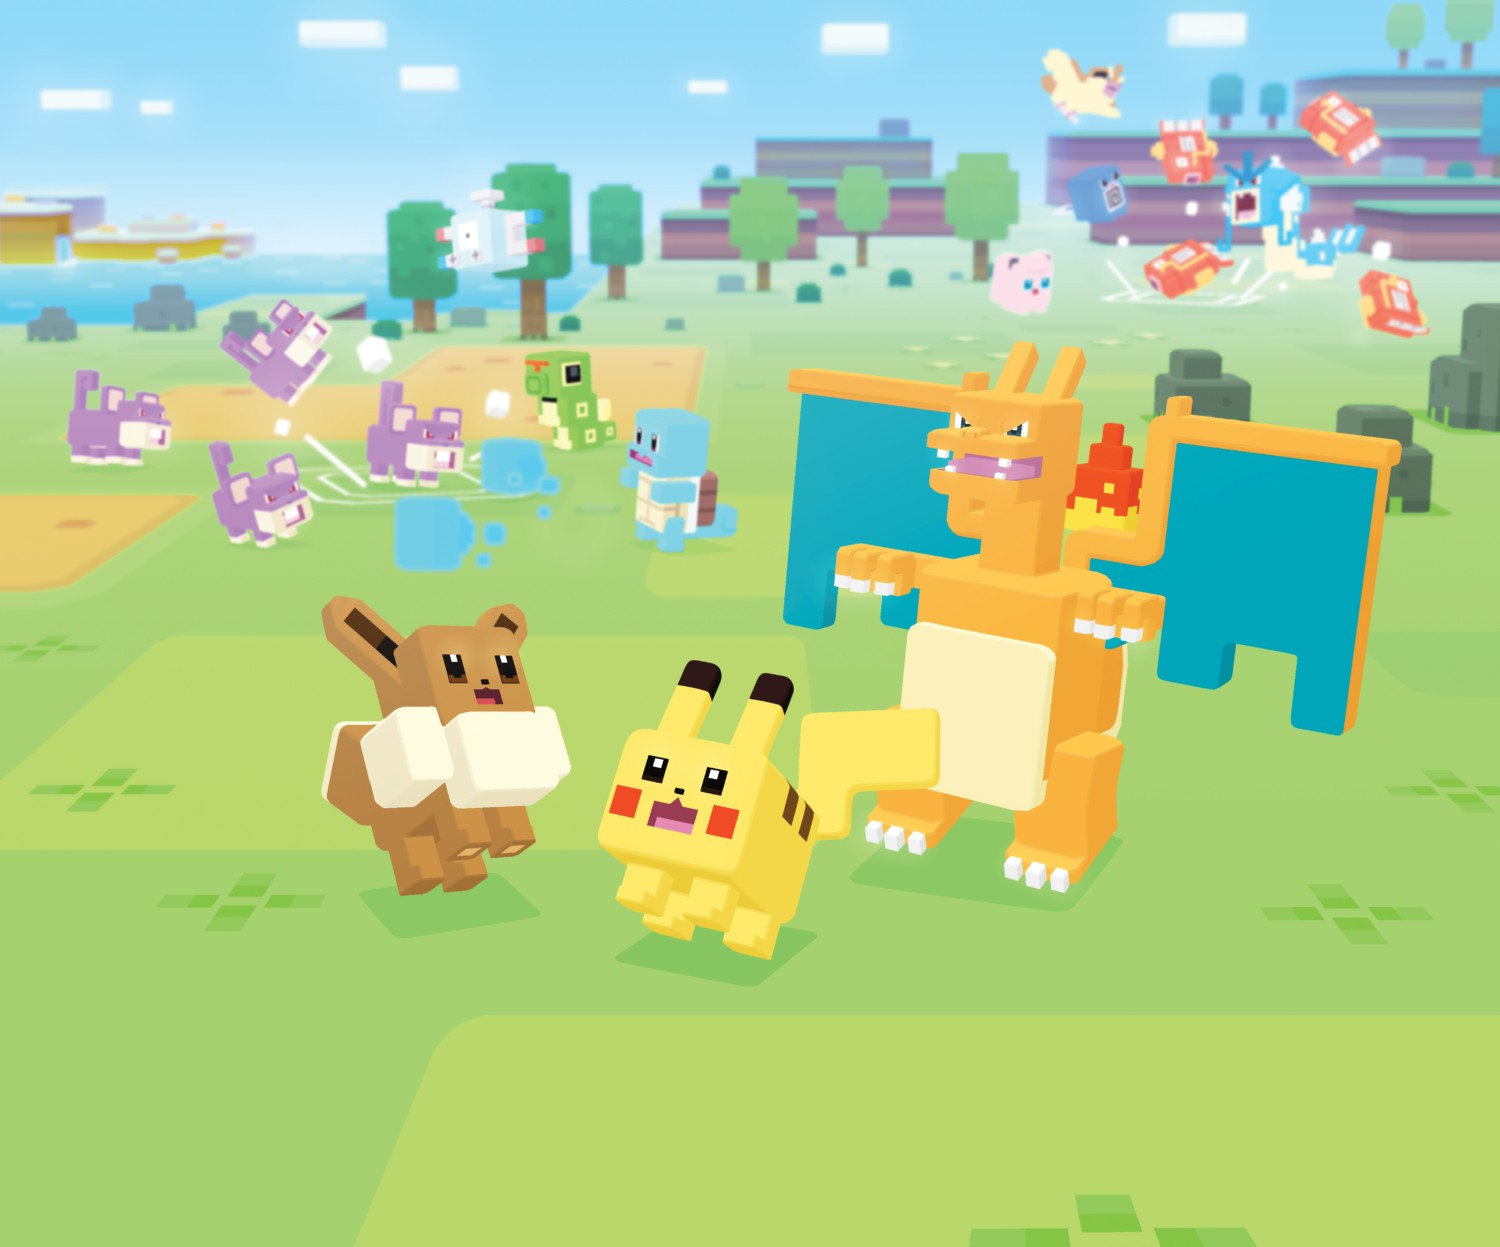 Pokemon Quest Will Launch With PVP System In China